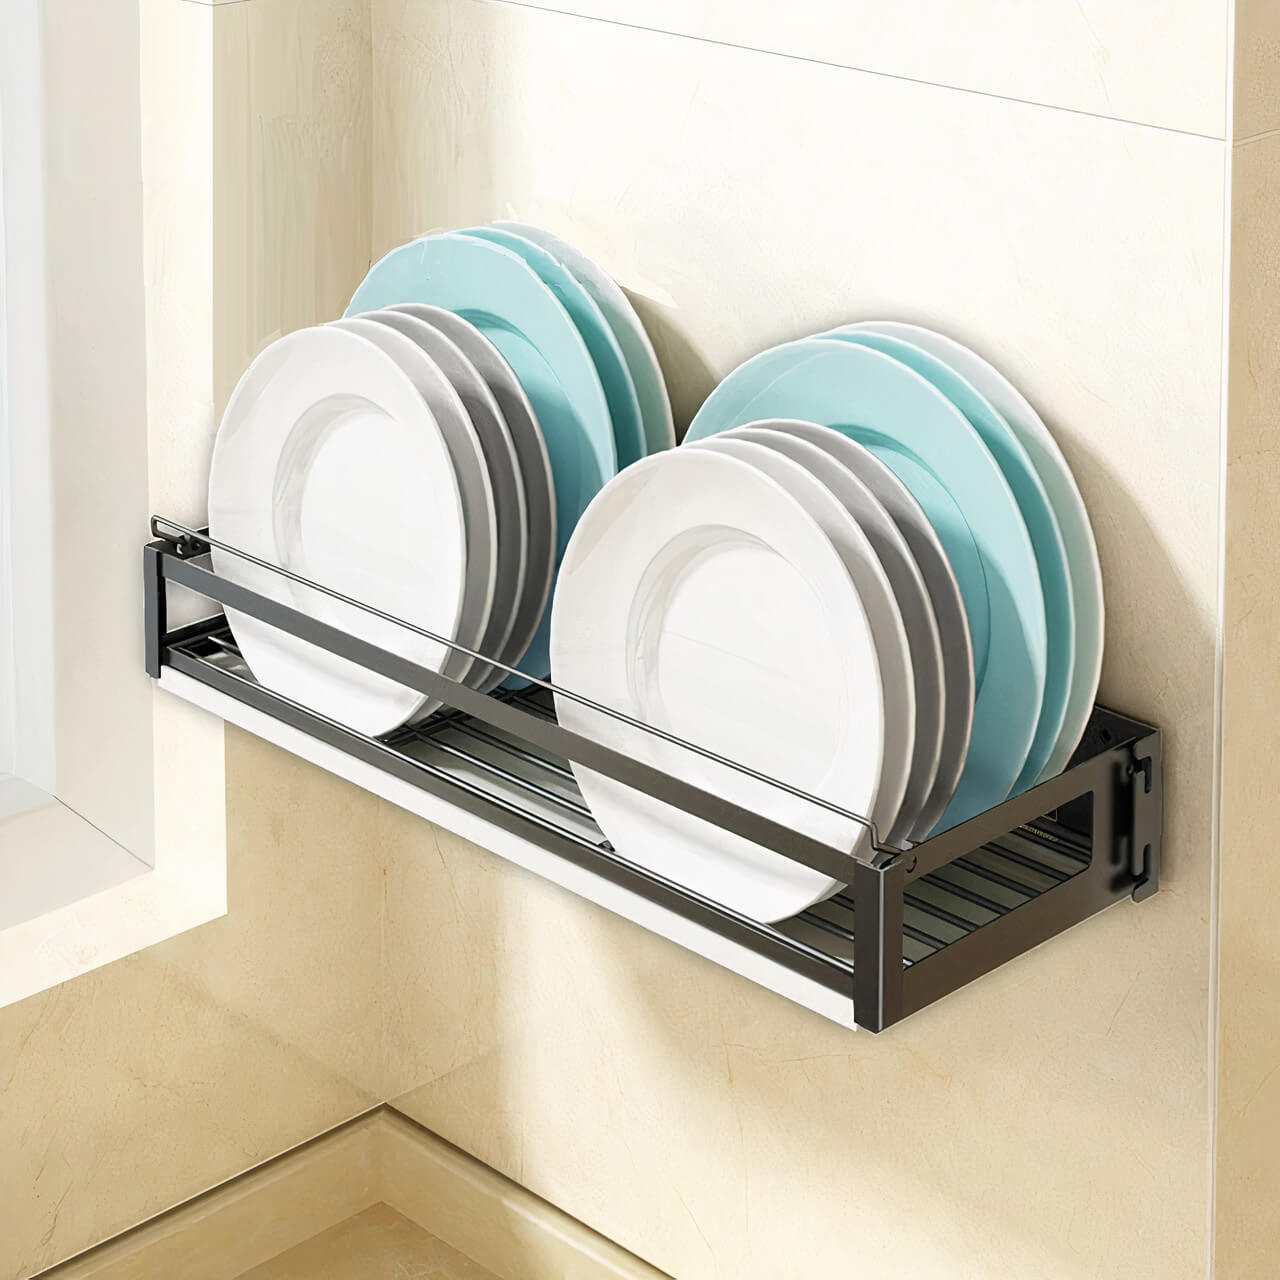 Wall Mounted Dish Shelf